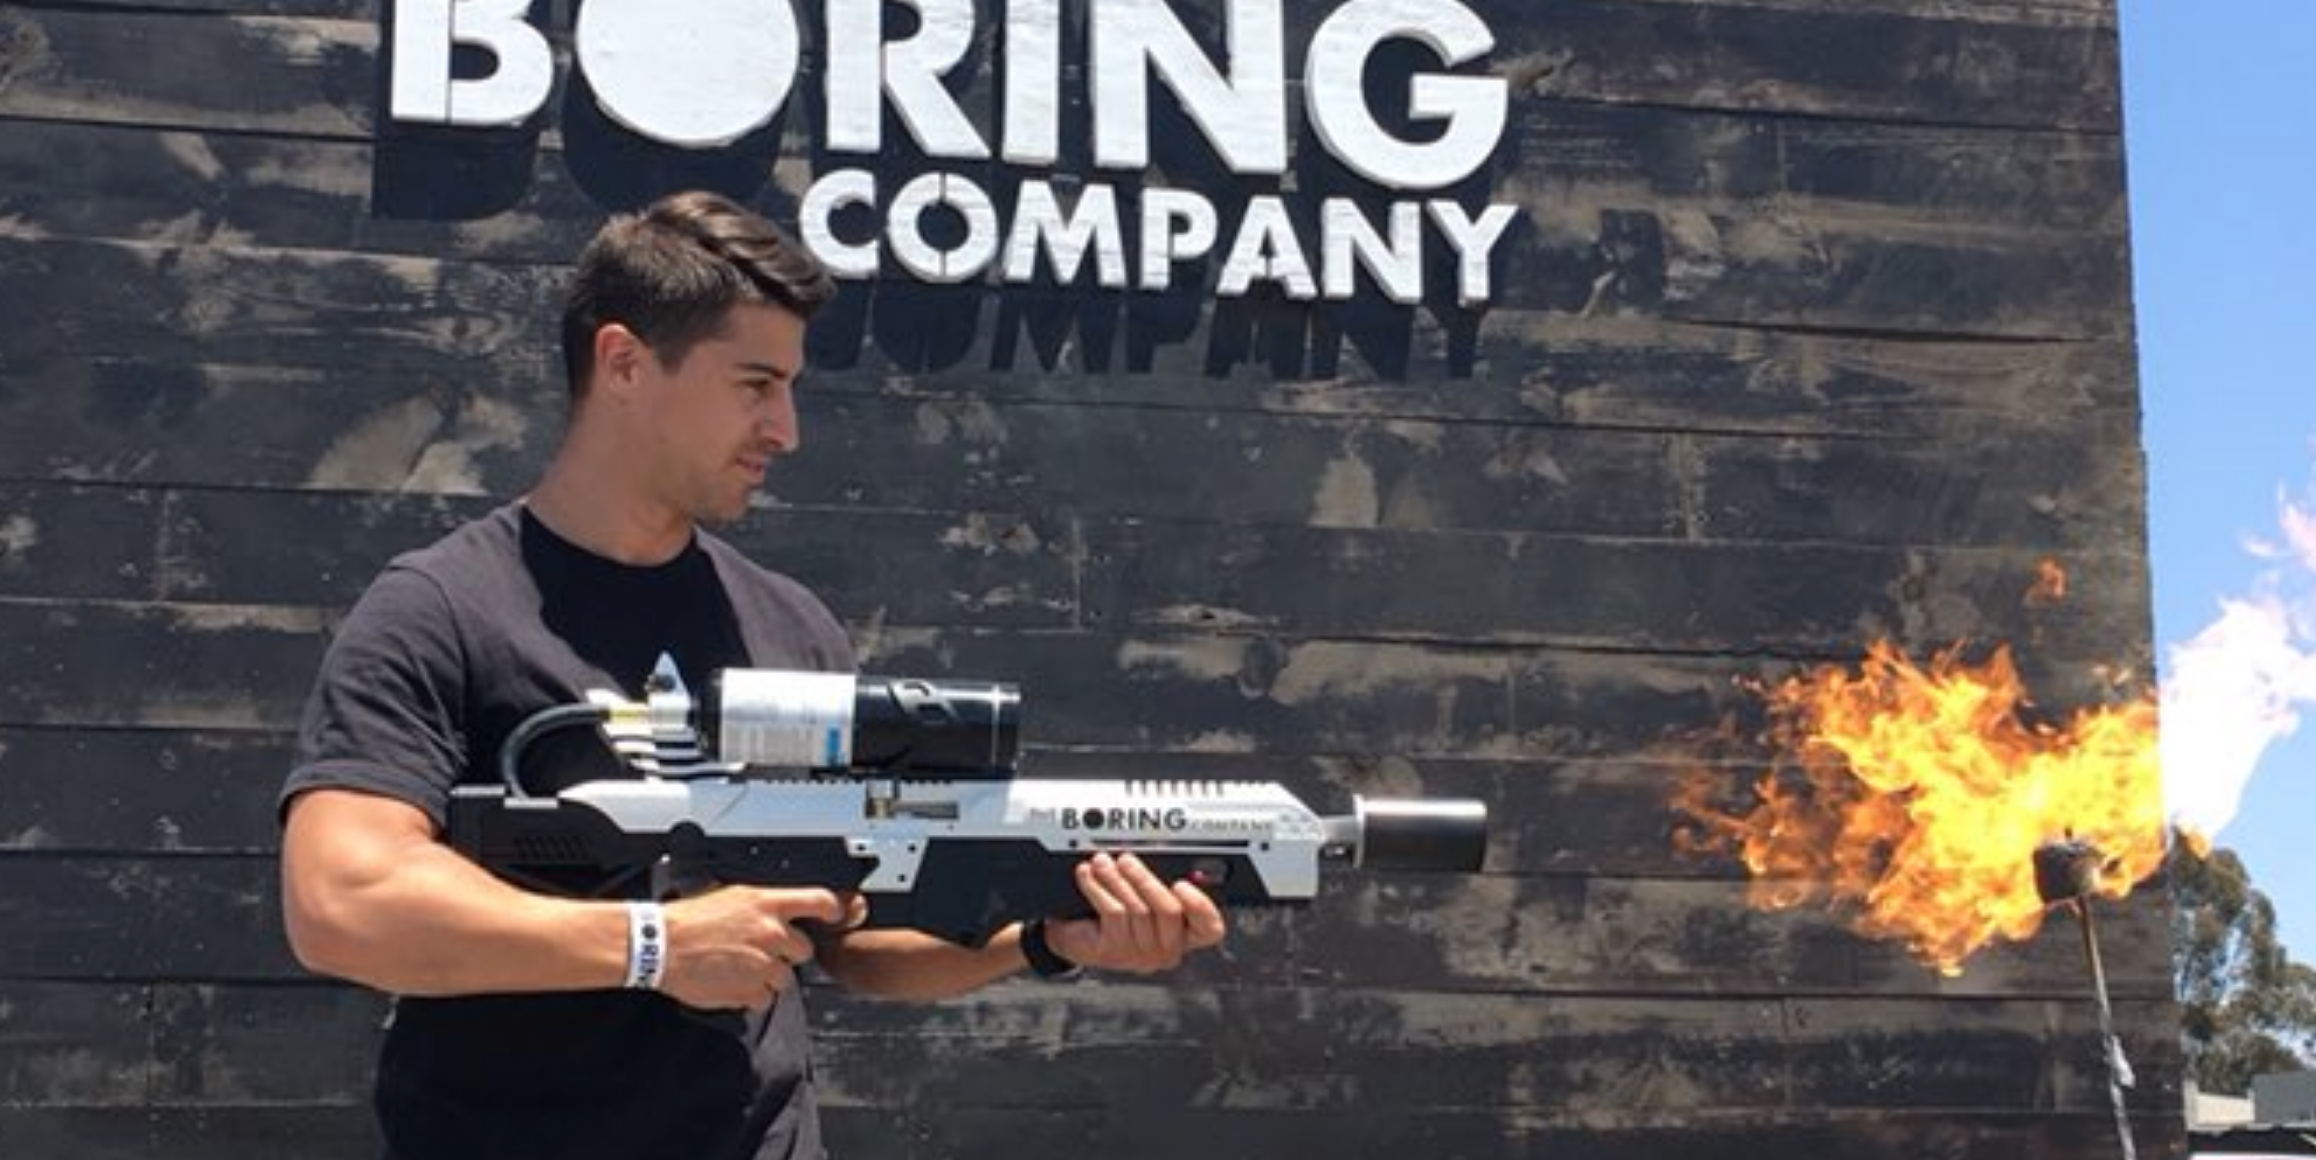 2019 Tech Predictions: The Boring Company Morphs Into a Construction Force